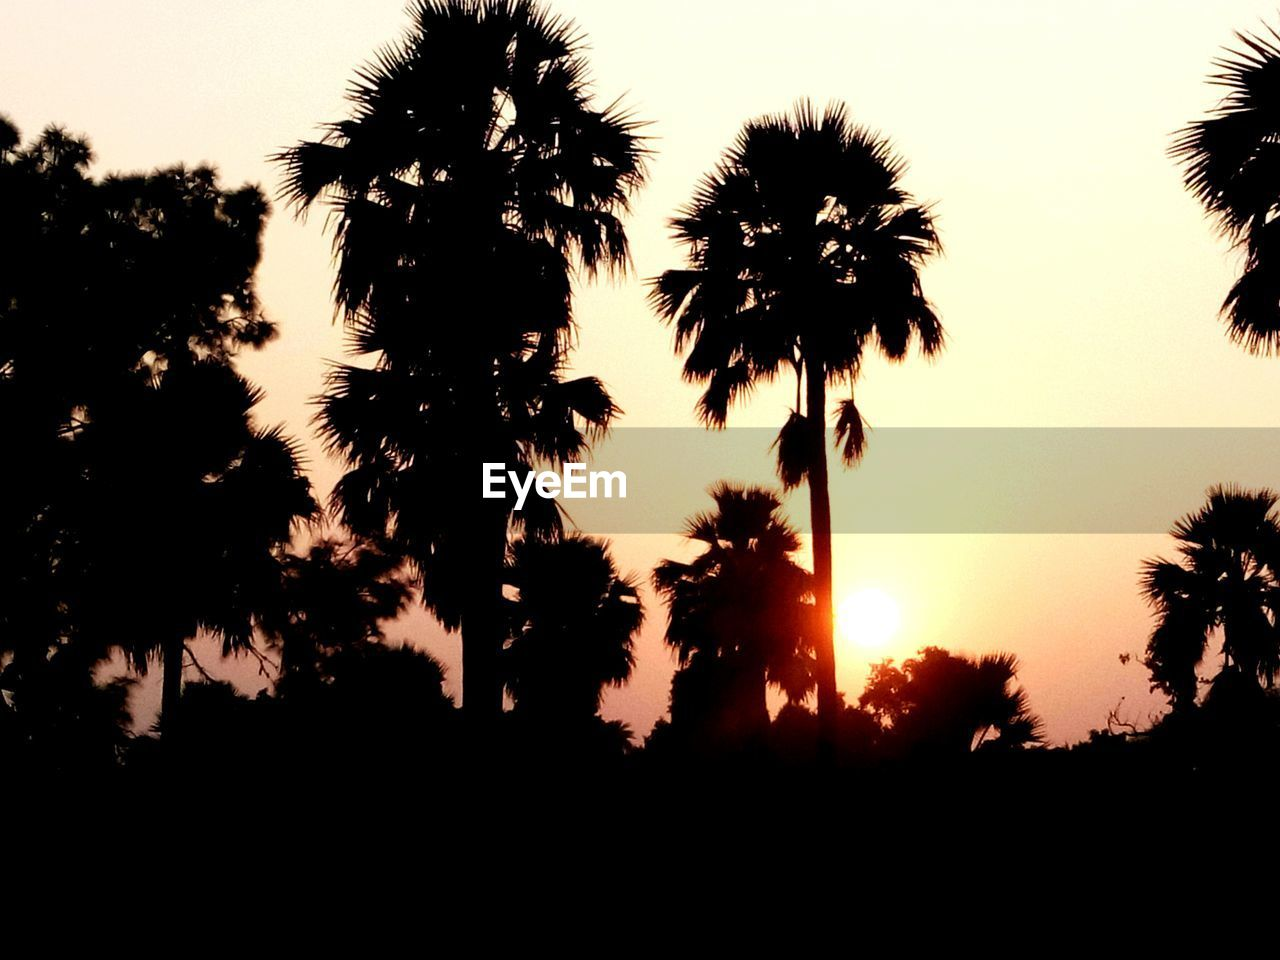 silhouette, sunset, tree, palm tree, tranquility, beauty in nature, tranquil scene, nature, growth, sky, tree trunk, scenics, no people, outdoors, day